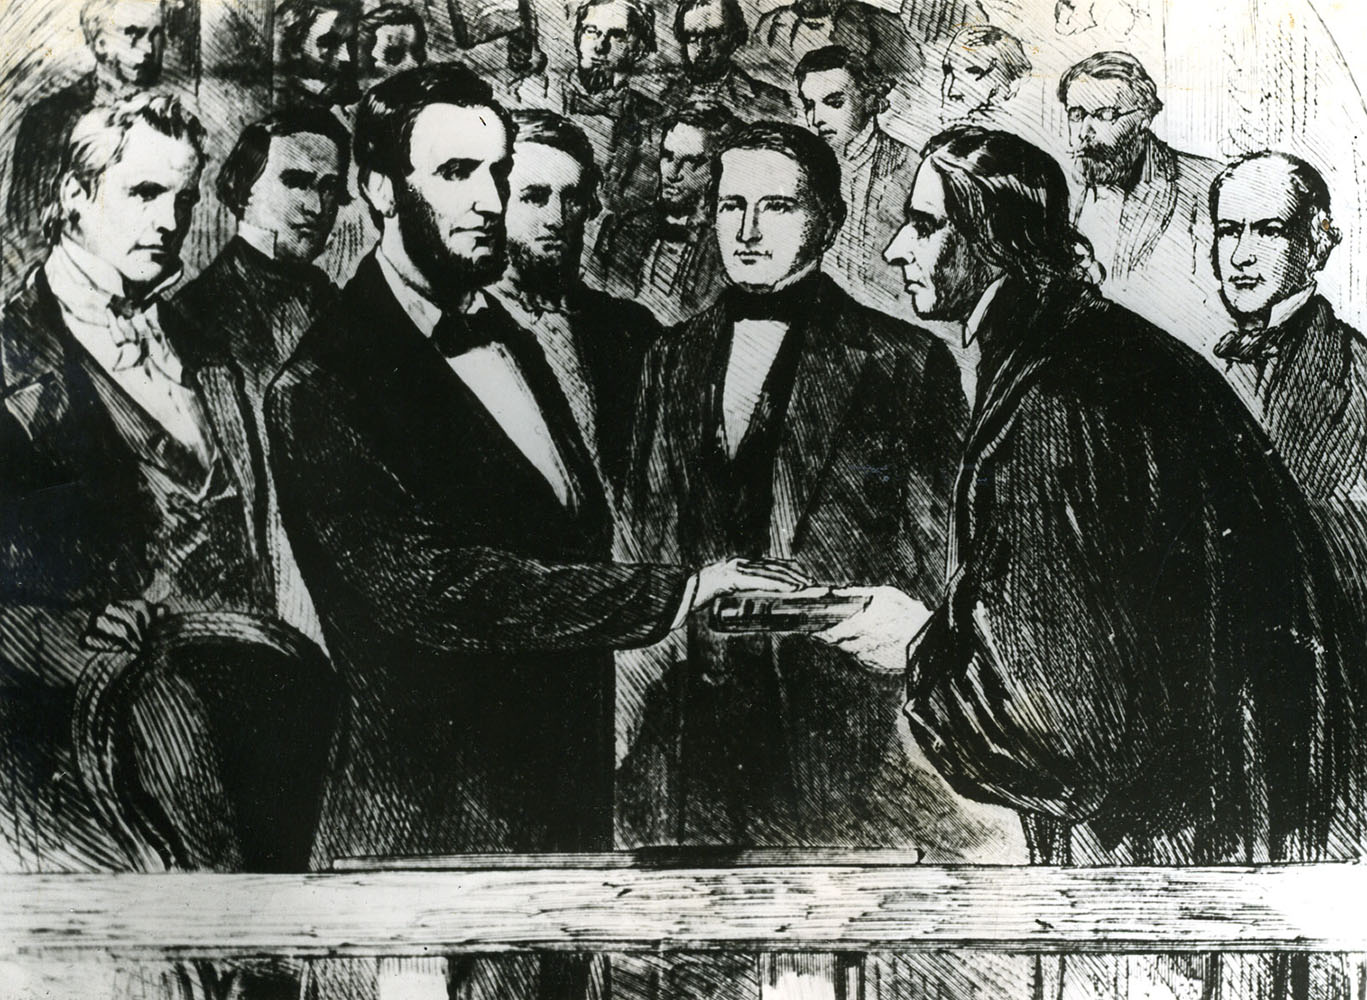 WASHINGTON, D.C. -- March 4, 1865 -- Abraham Lincoln's second Inauguration. Photograph from a painting of the second Inauguration of Abraham Lincoln as President of the United States. Mr. Lincoln is seen taking the oath of office at his Inaugural. Photo by unknown/file photo (daily folder 01/11/09) MANDATORY CREDIT: Baltimore Examiner and Washington Examiner OUT